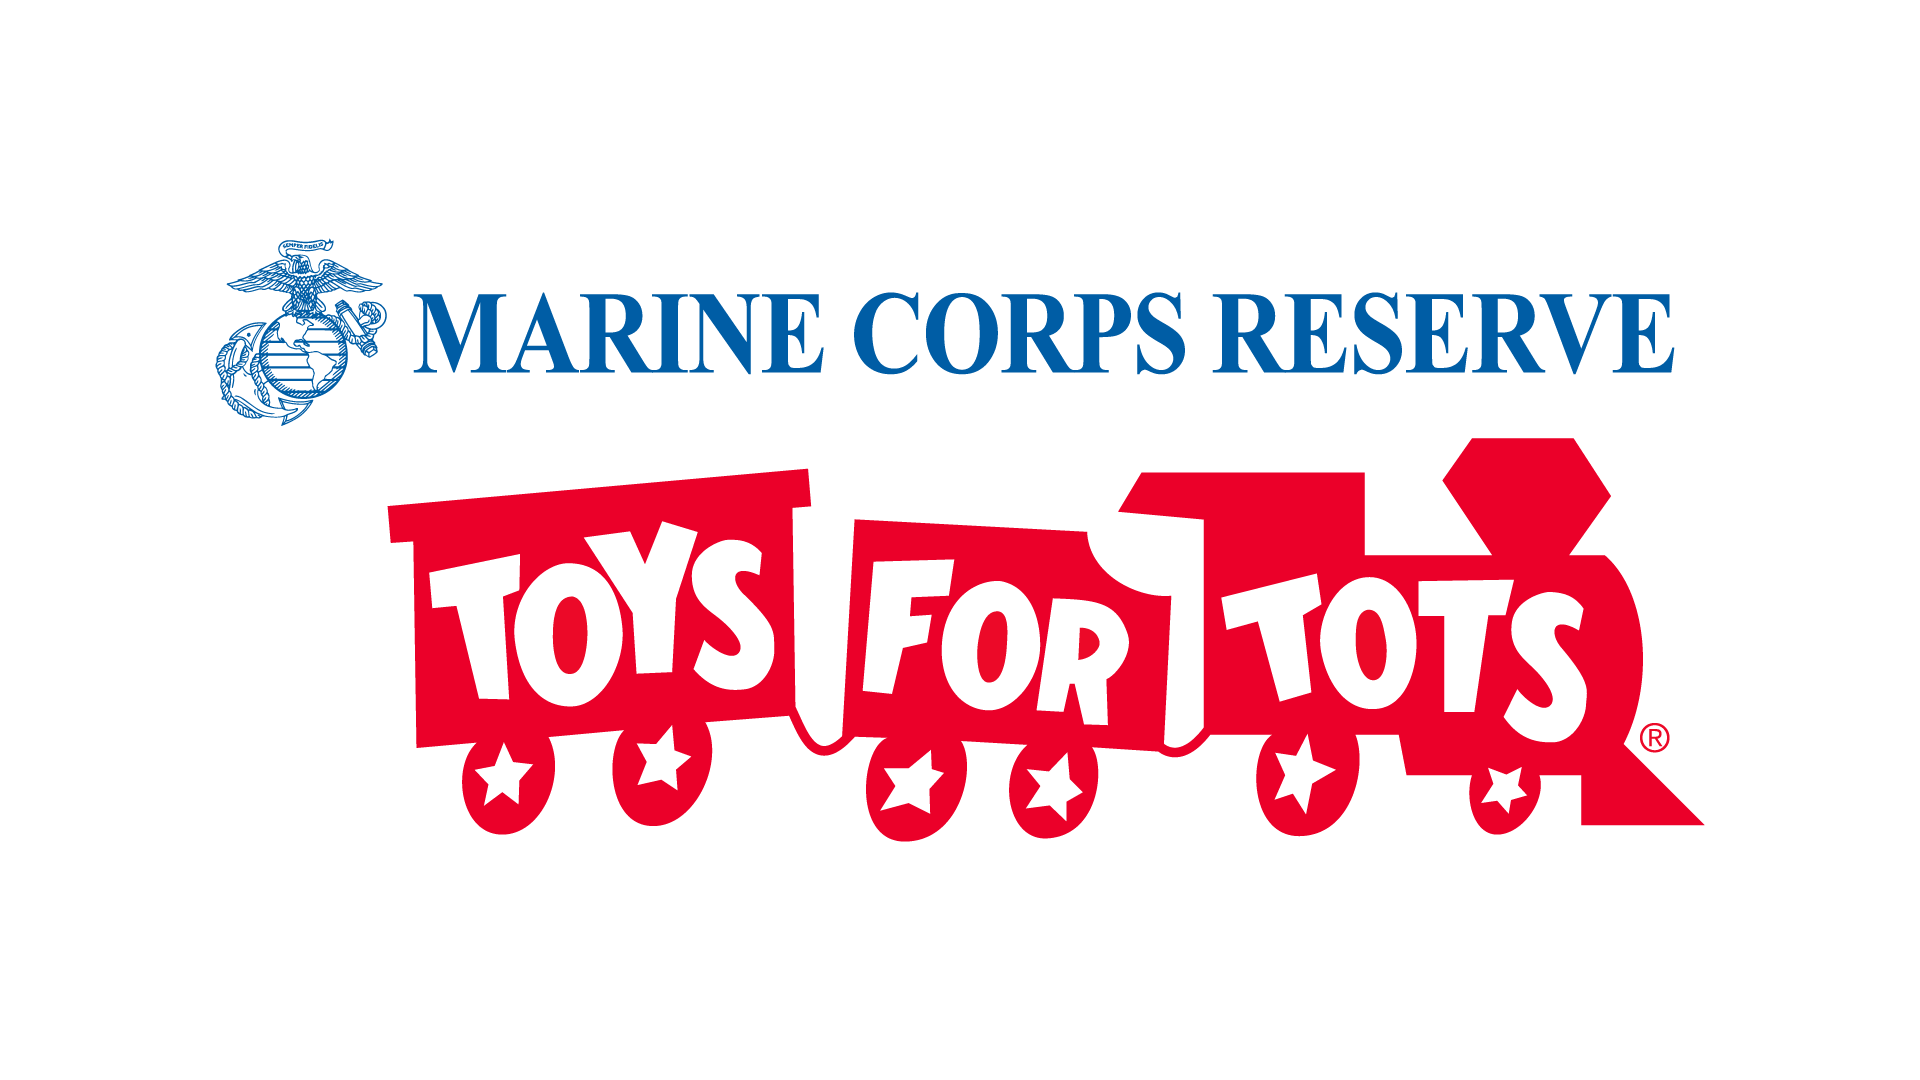 Toys For Tots Foundation Logo : Marine corps toys for tots wow